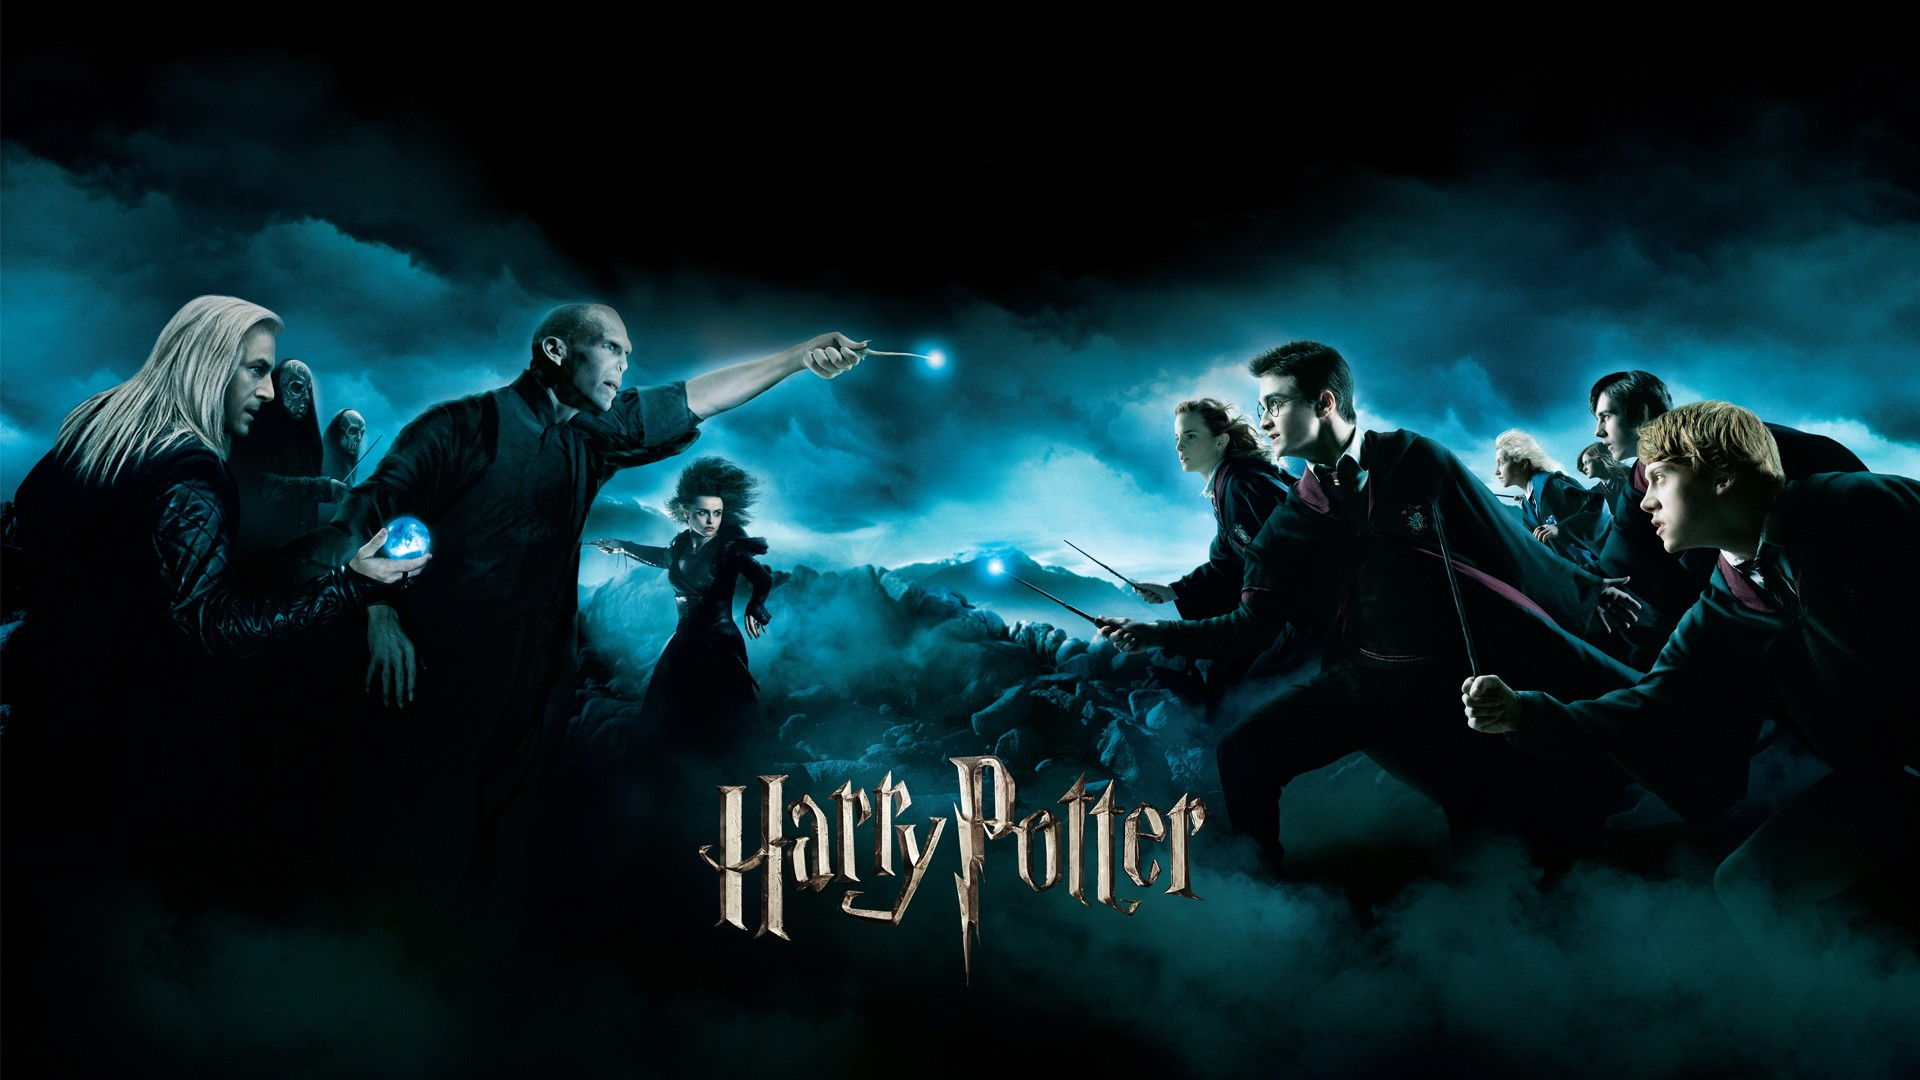 Harry Potter Hd Wallpaper For Android Phone Best Funny Images